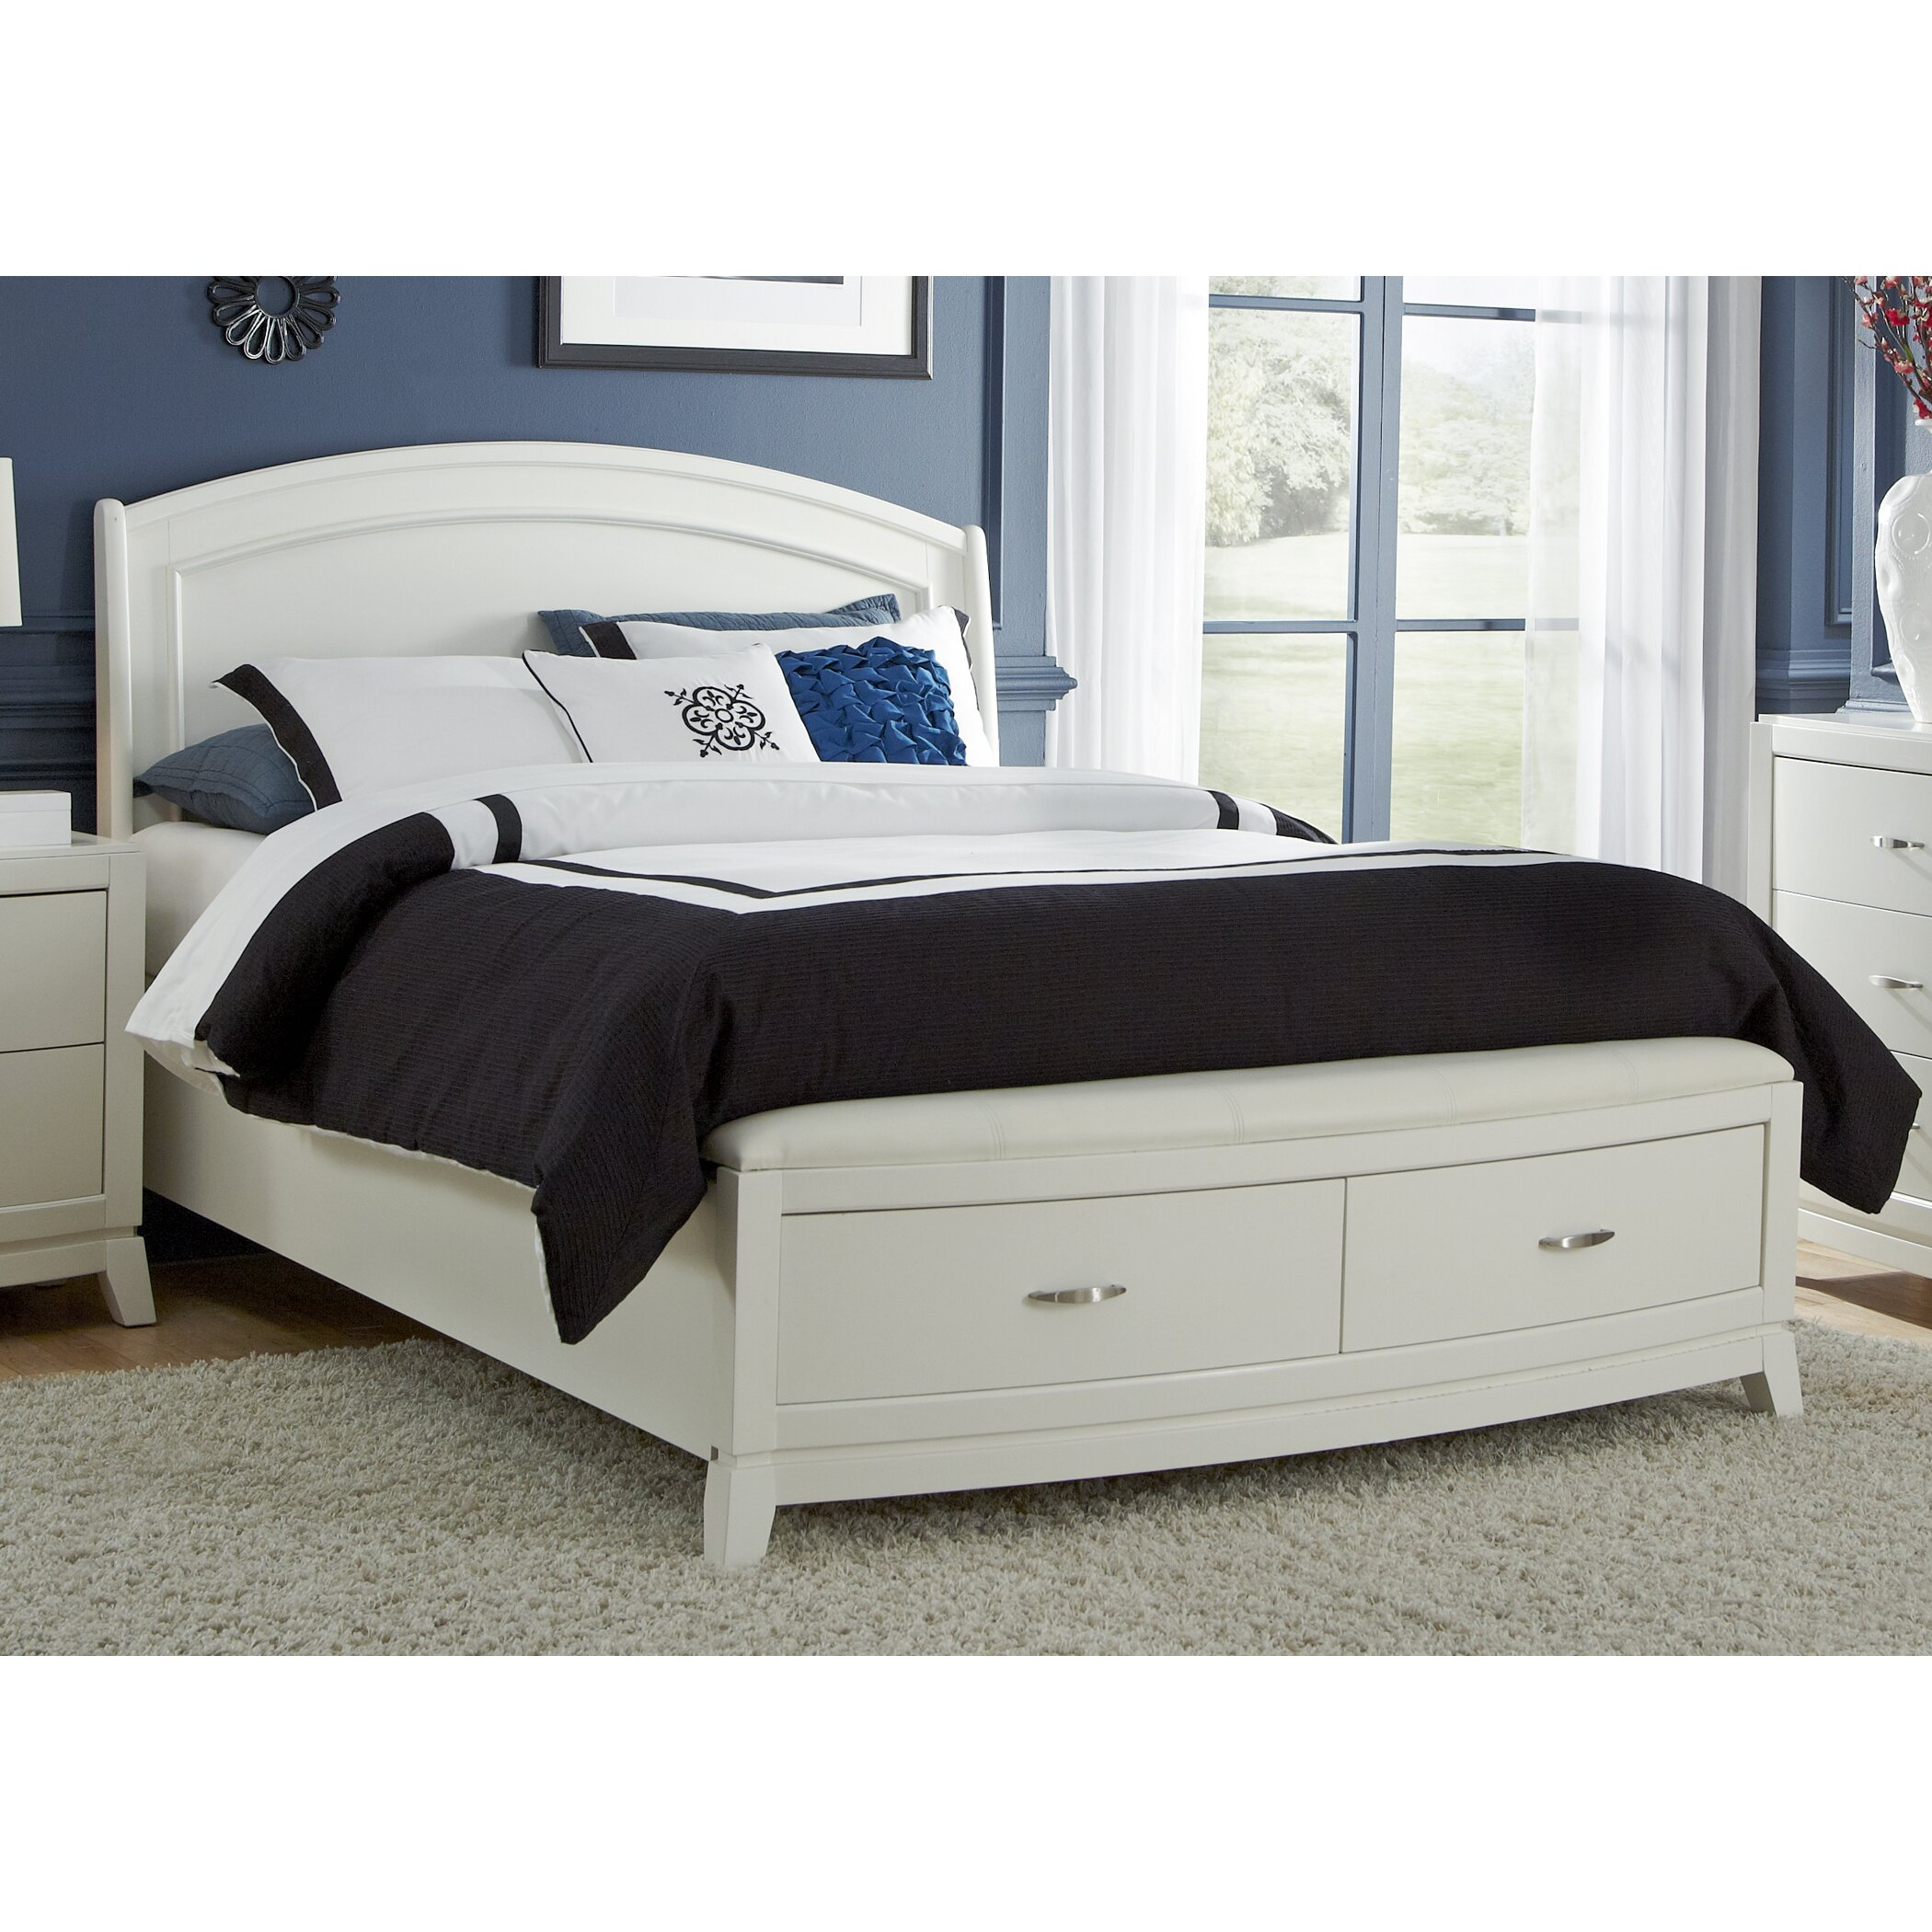 Storage Bedroom Furniture: Liberty Furniture Storage Platform Customizable Bedroom